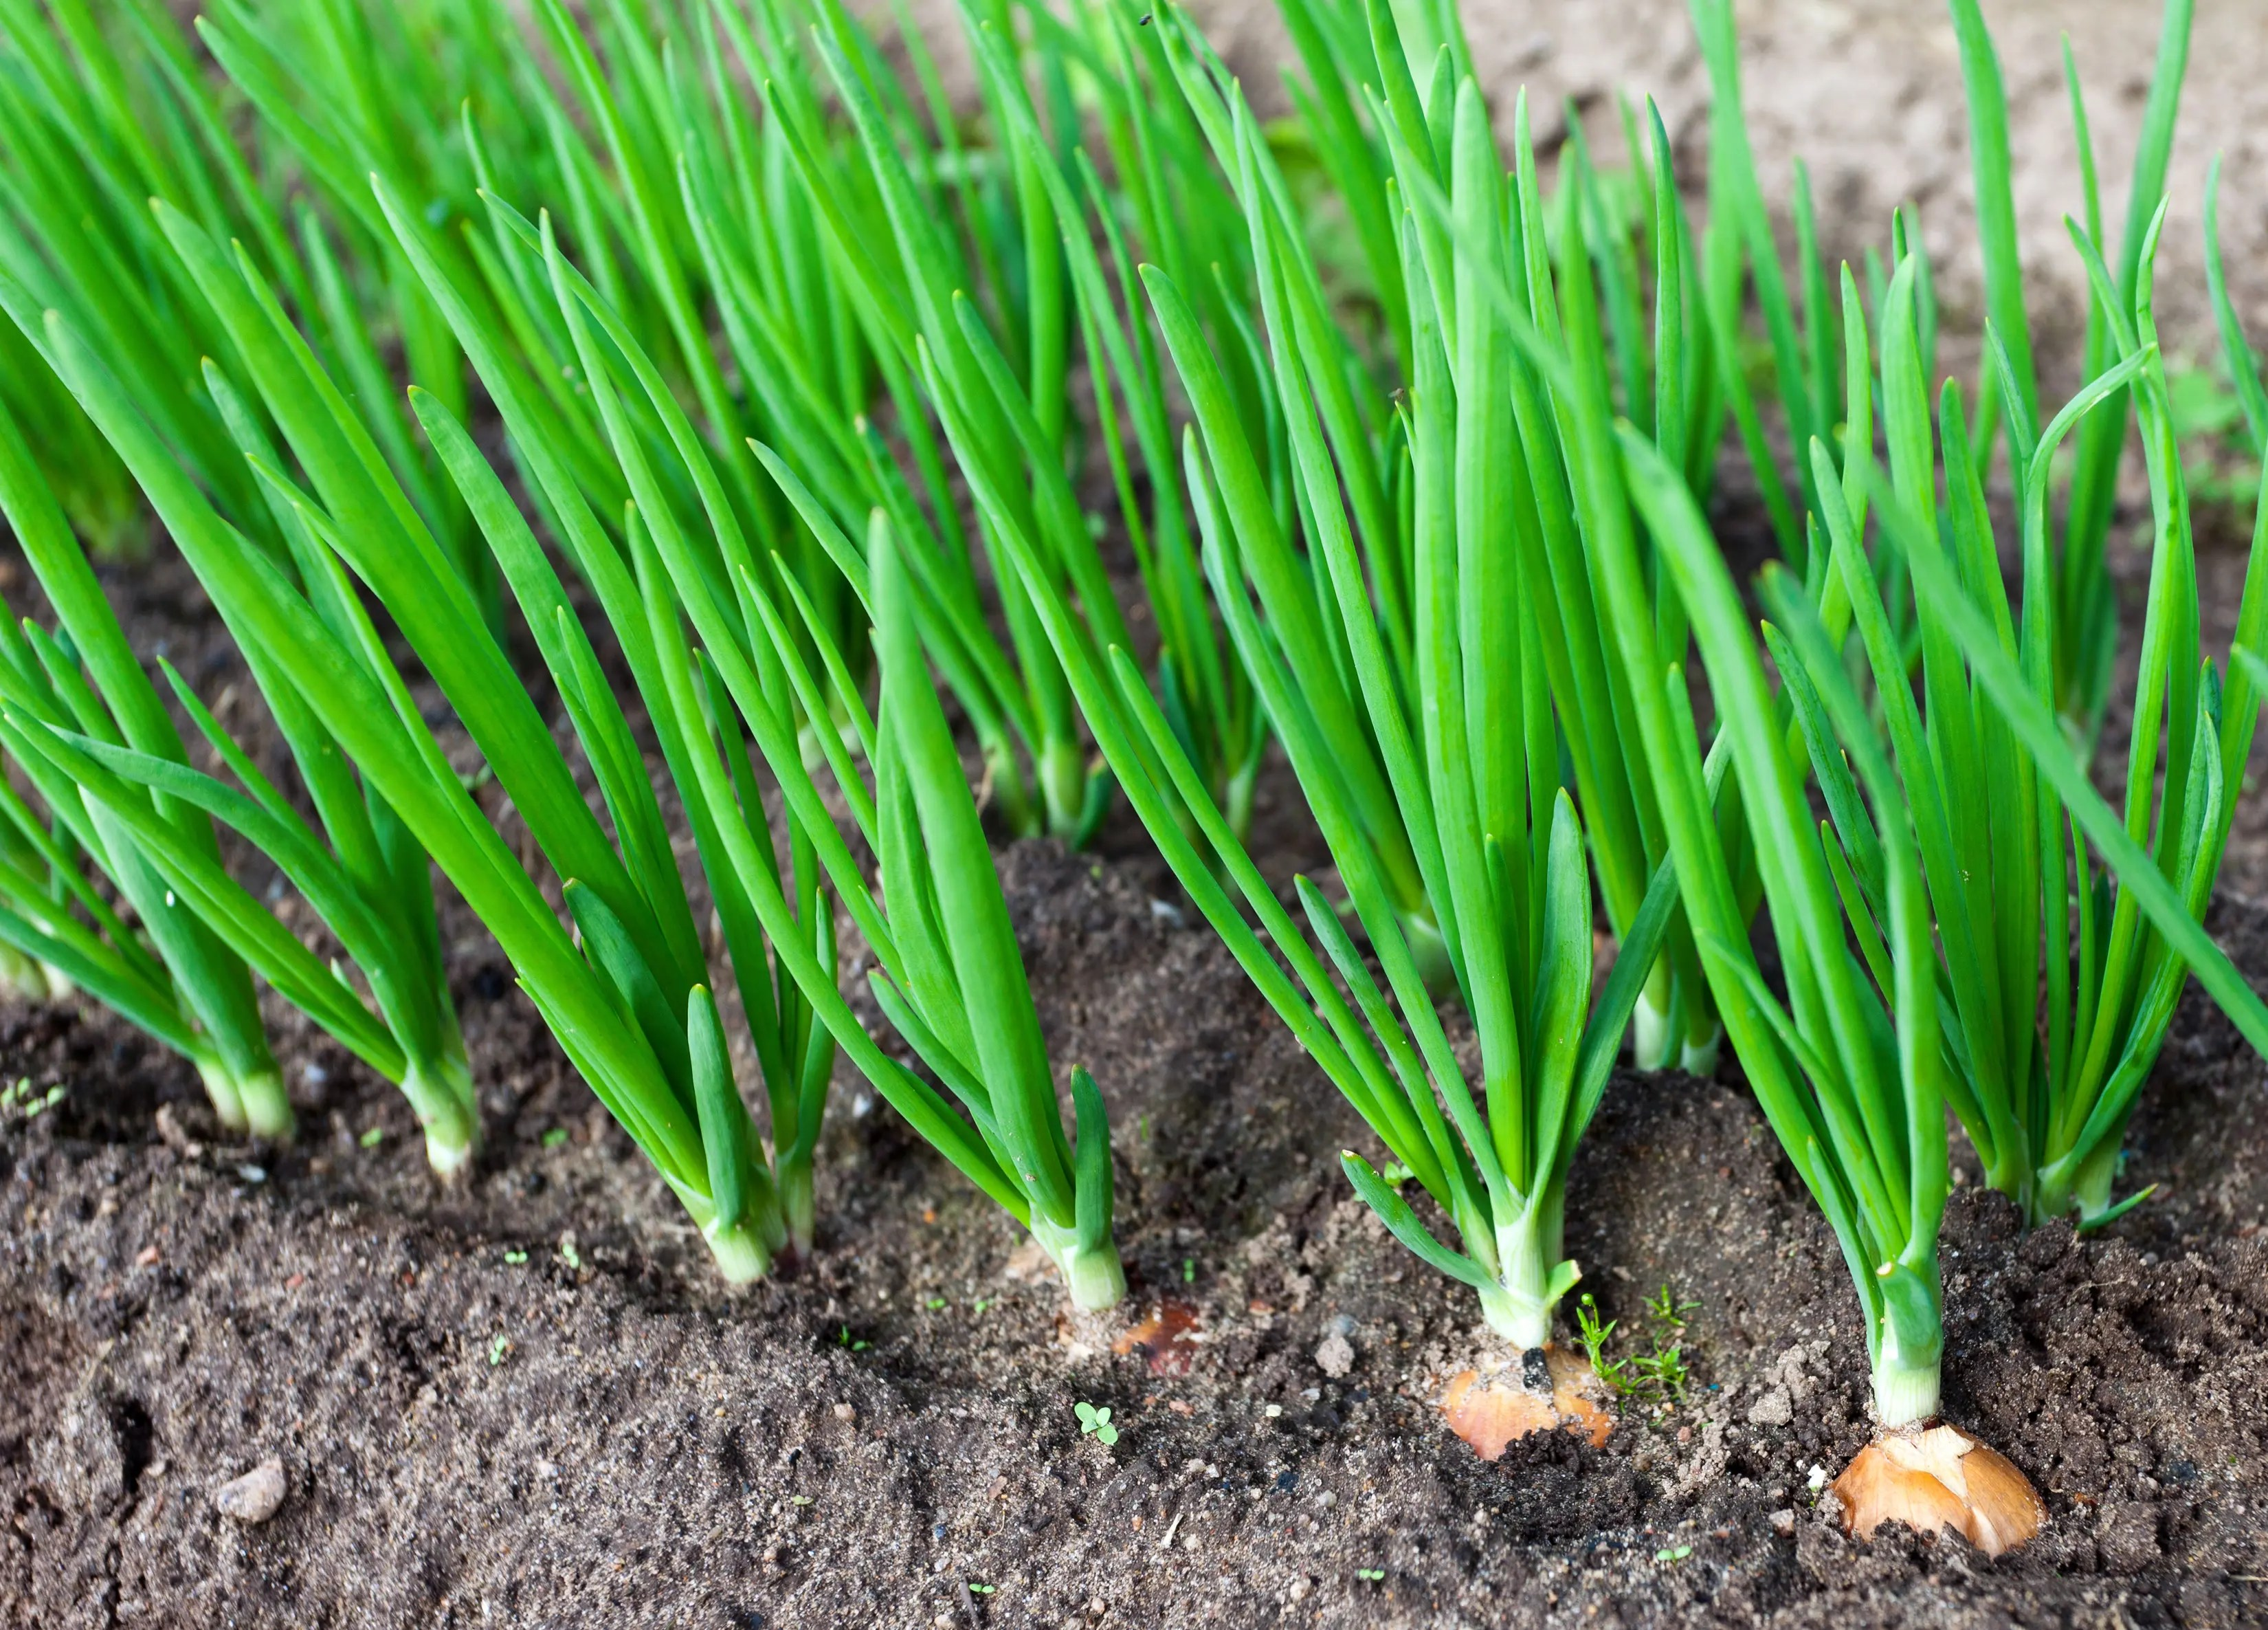 30 Second Guide to Growing Onions